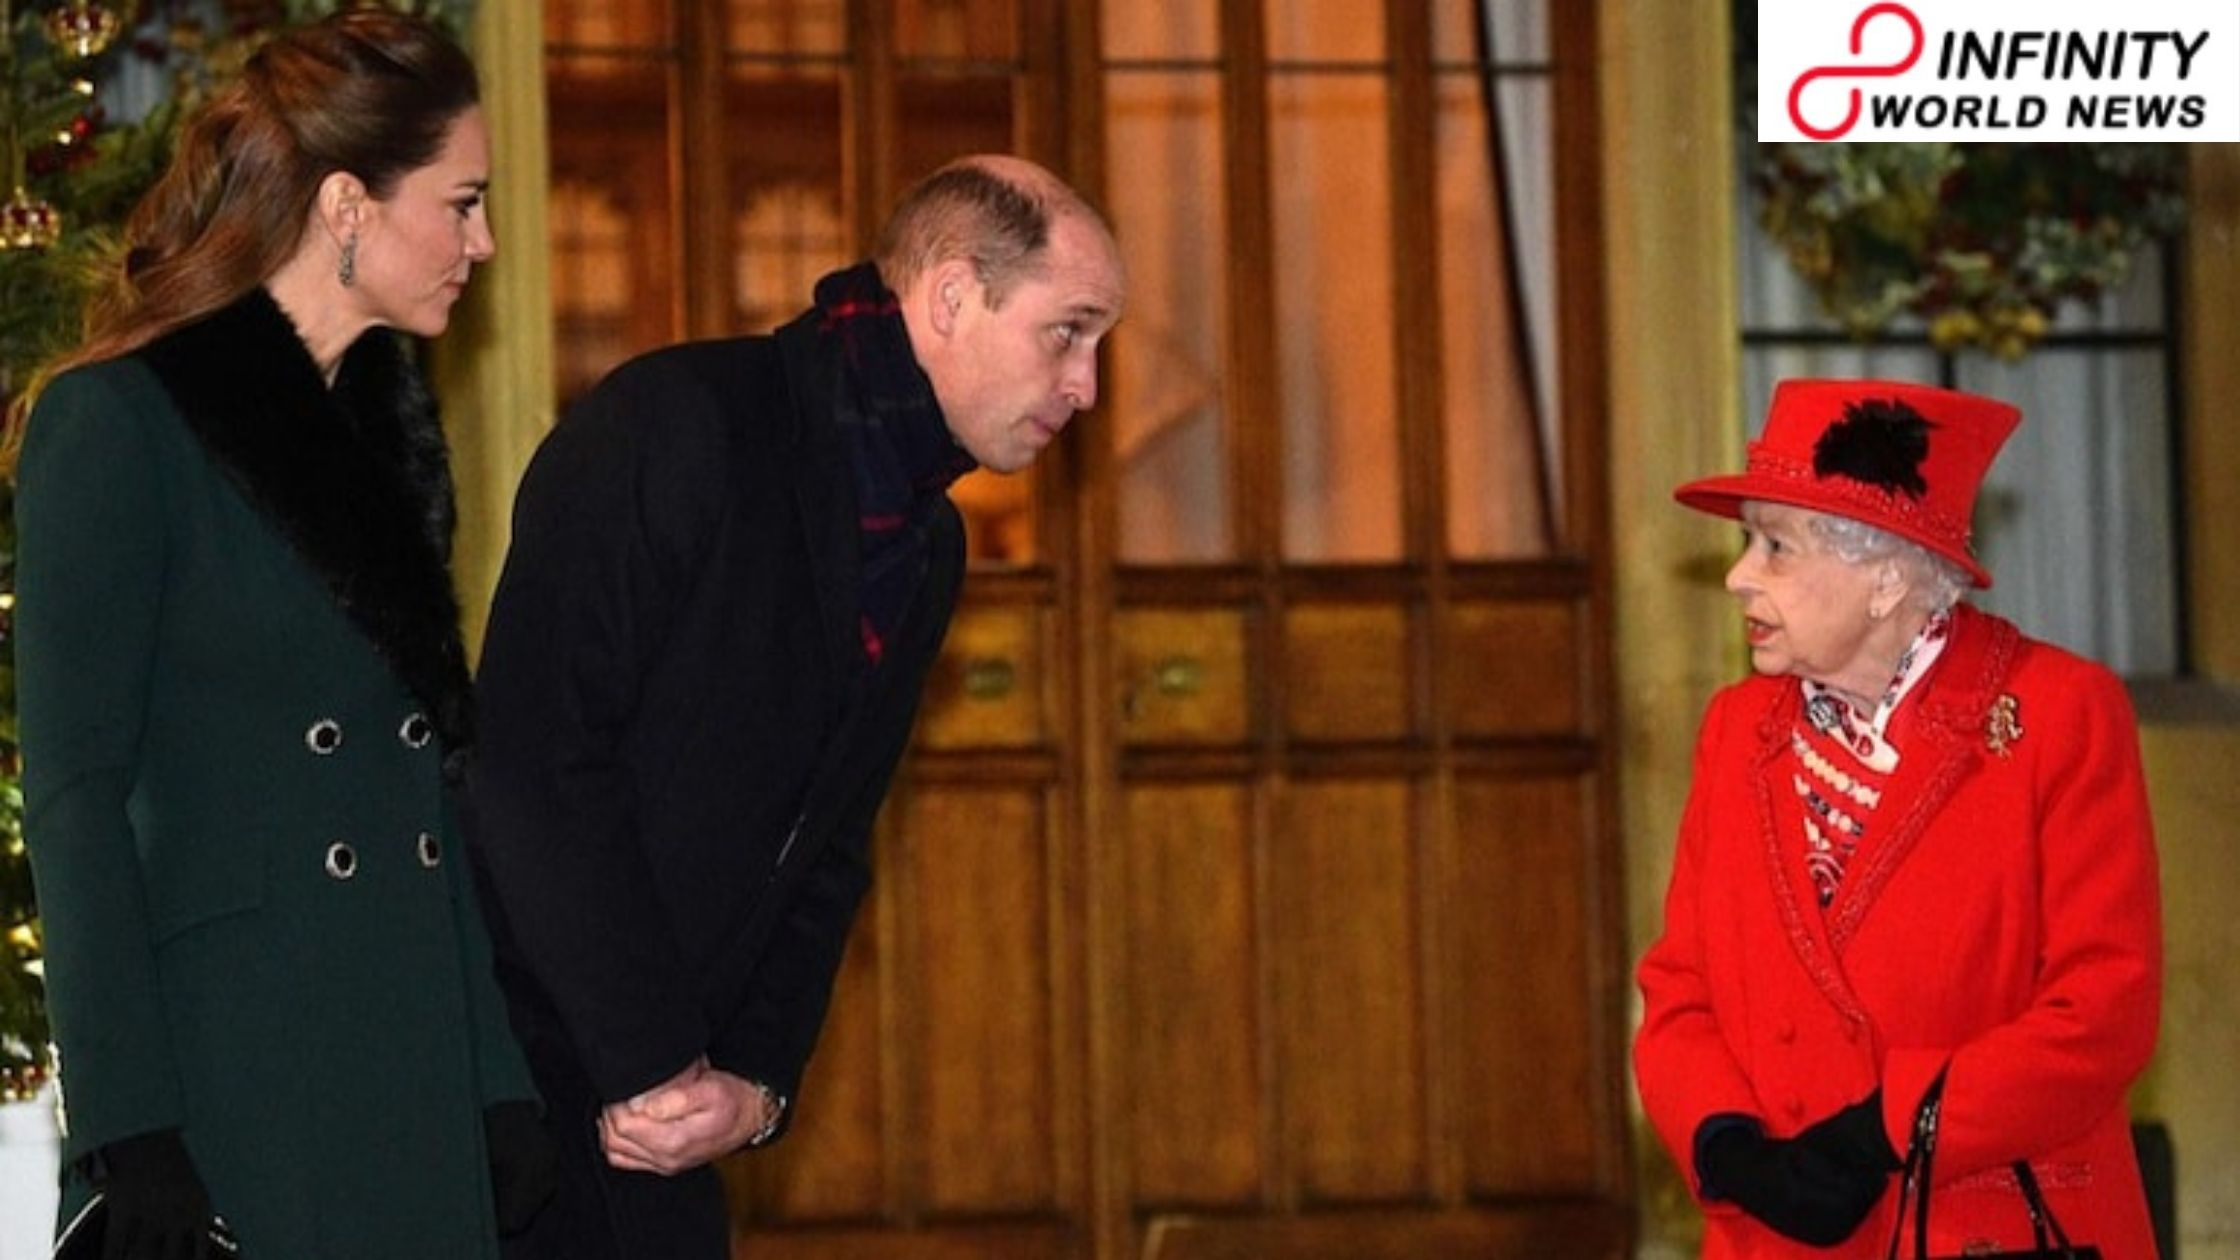 Sovereign William says farewell to the best to his gran the Queen